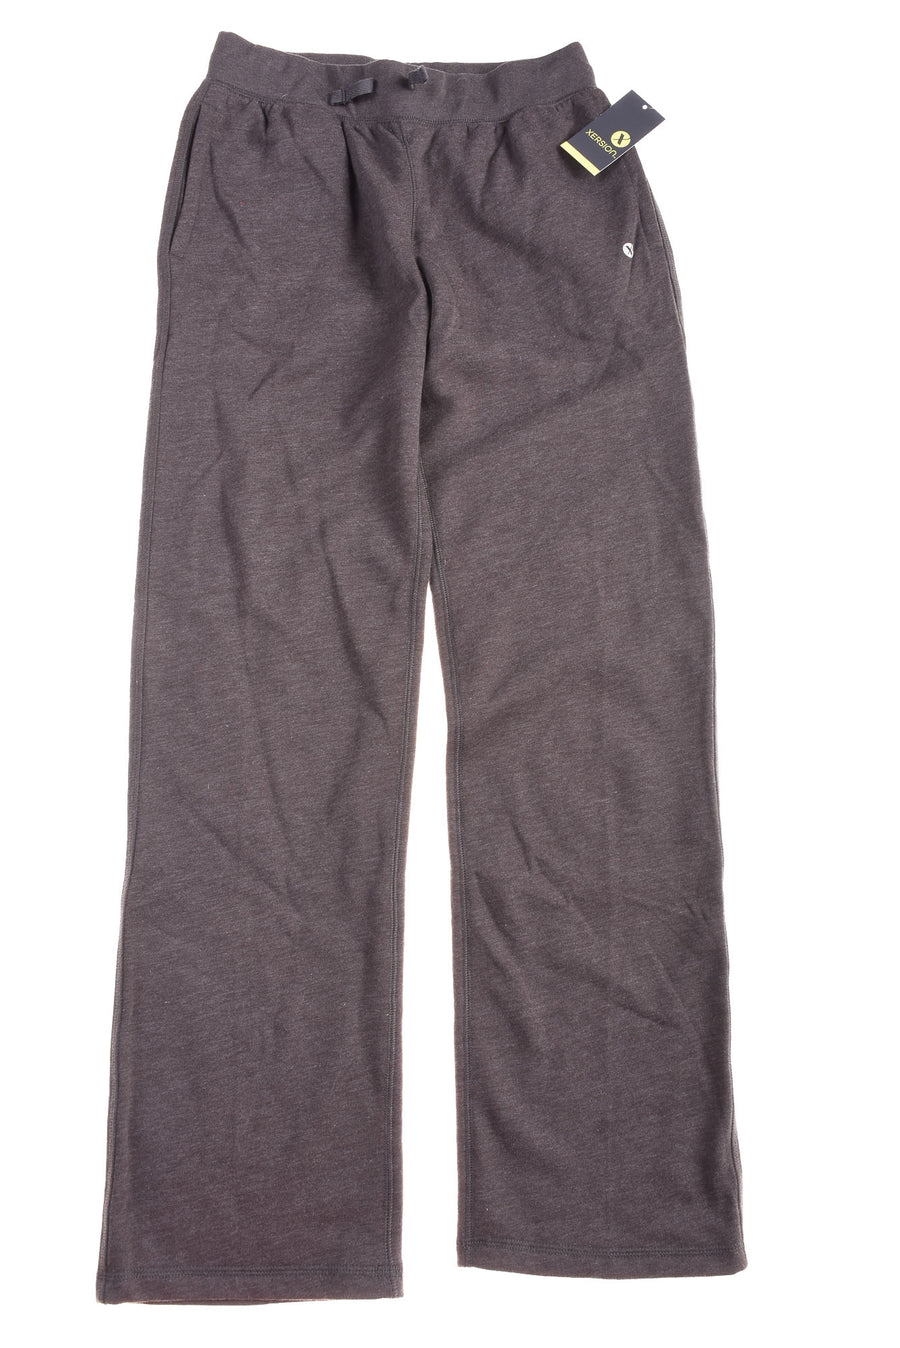 NEW Xersion Girl's Pants 14/16 Gray